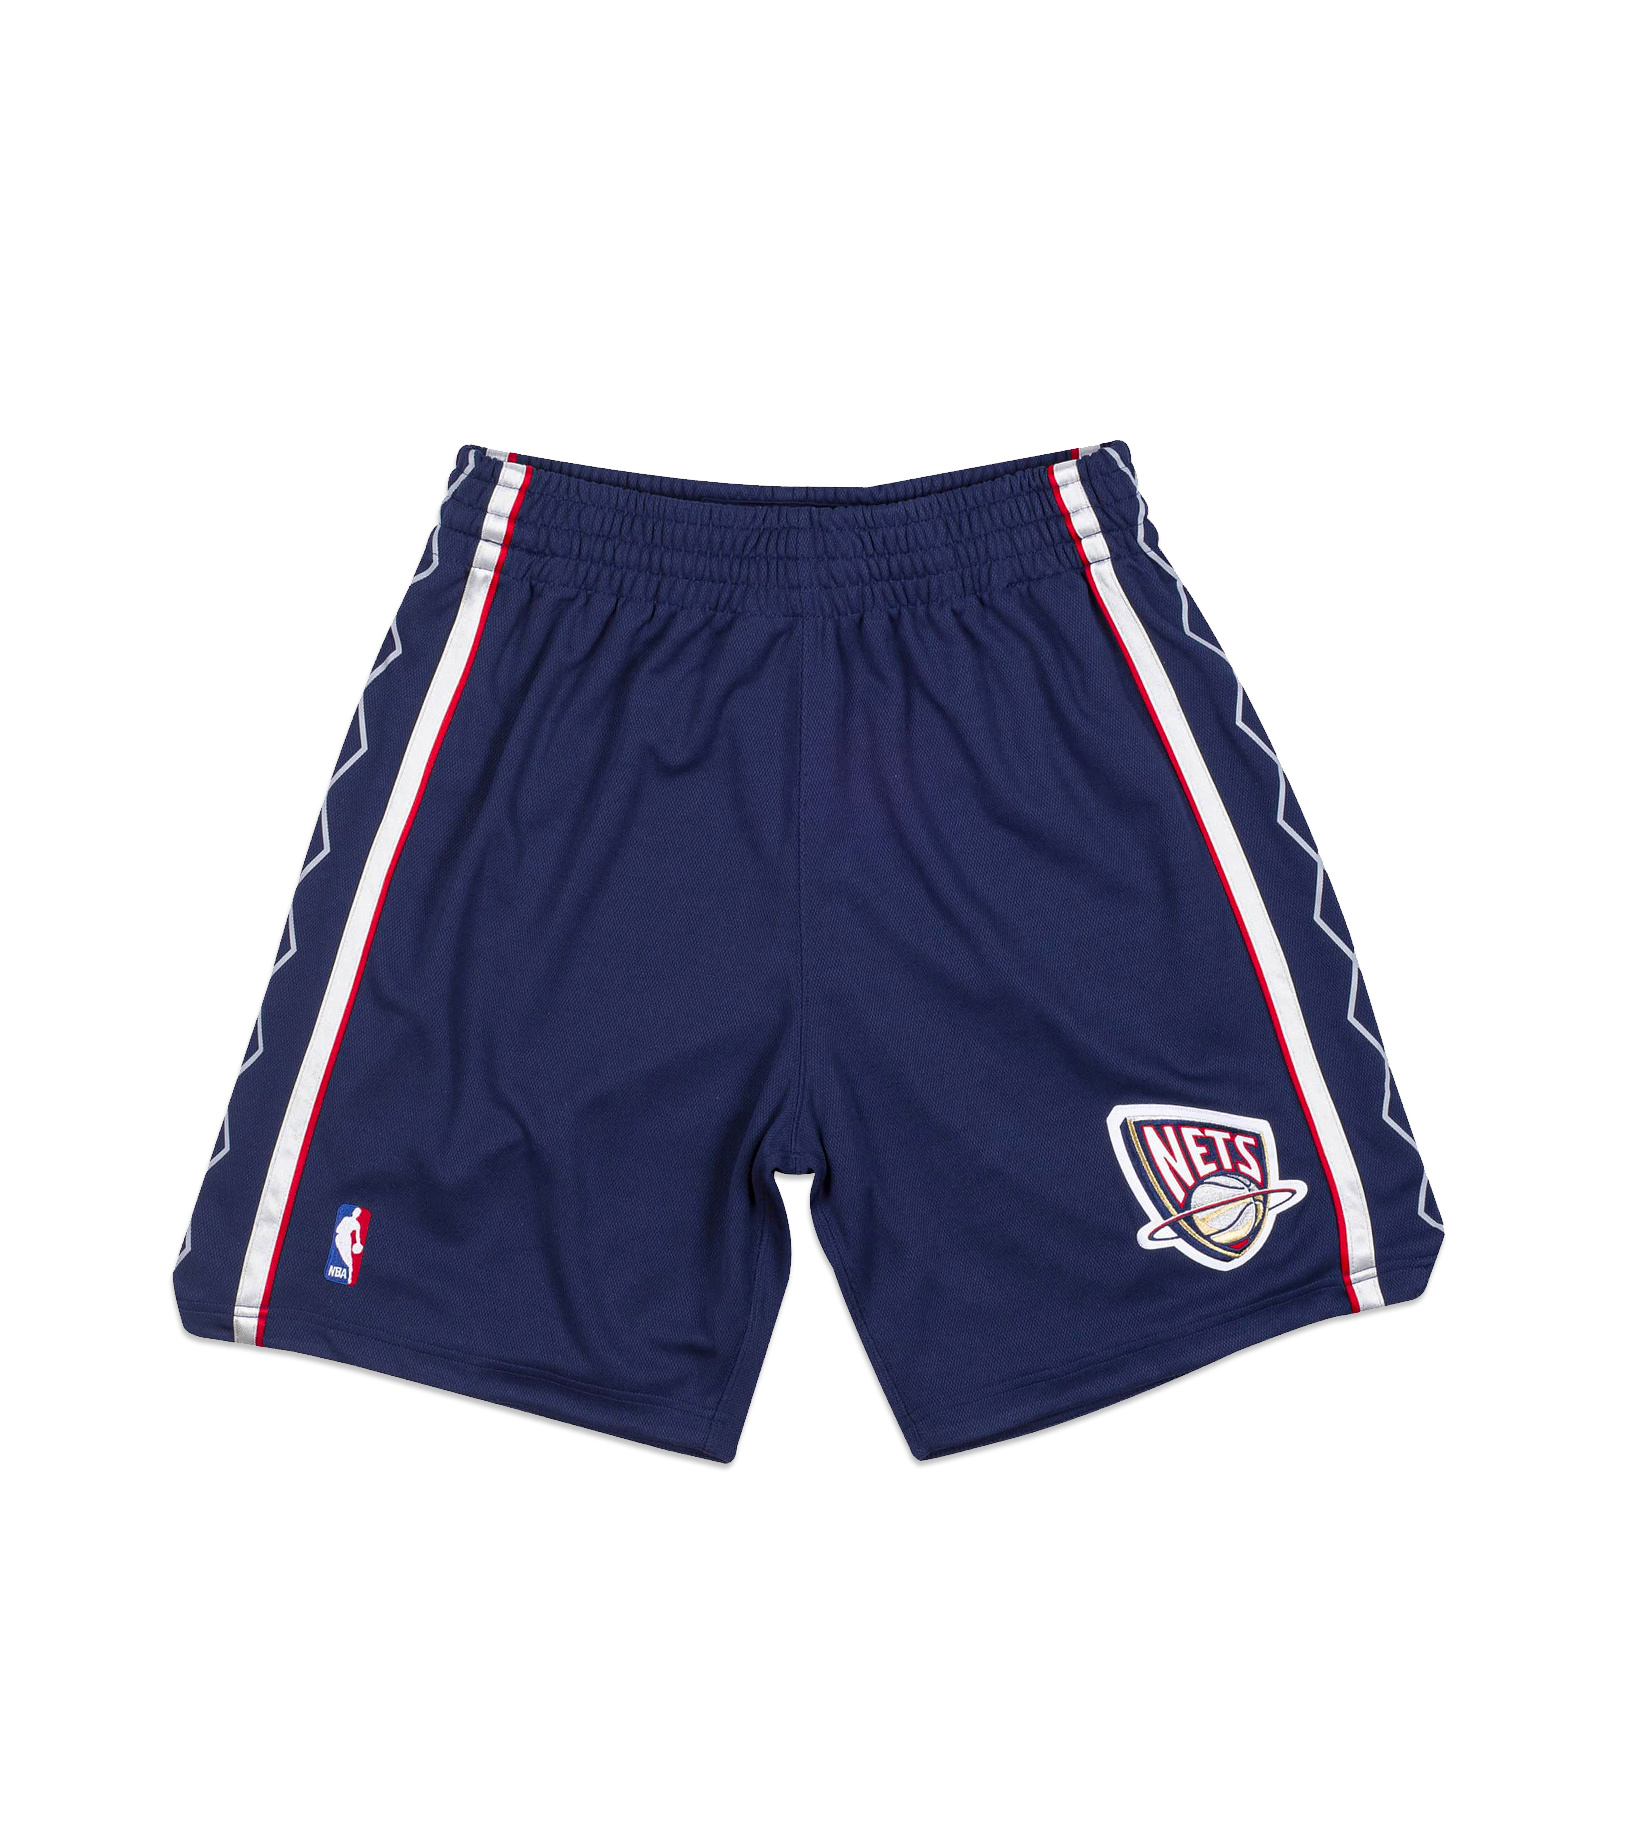 """New Jersey Nets '06-'07 Authentic Road Short """"Astros Blue""""-1"""